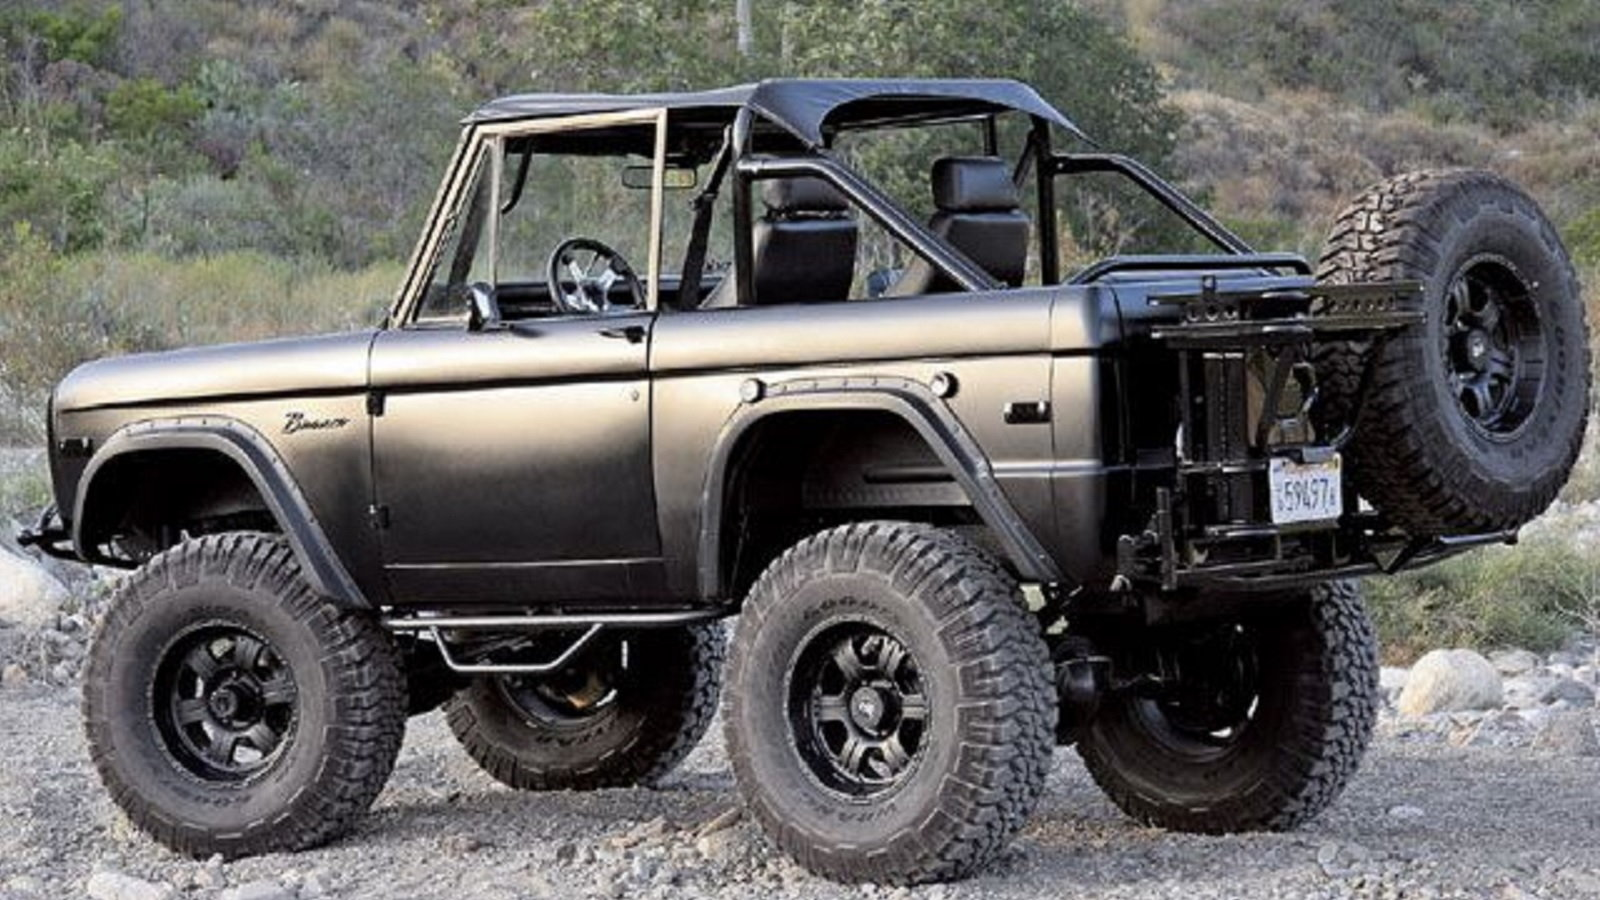 What was South Country looking at with Turley's Bronco?